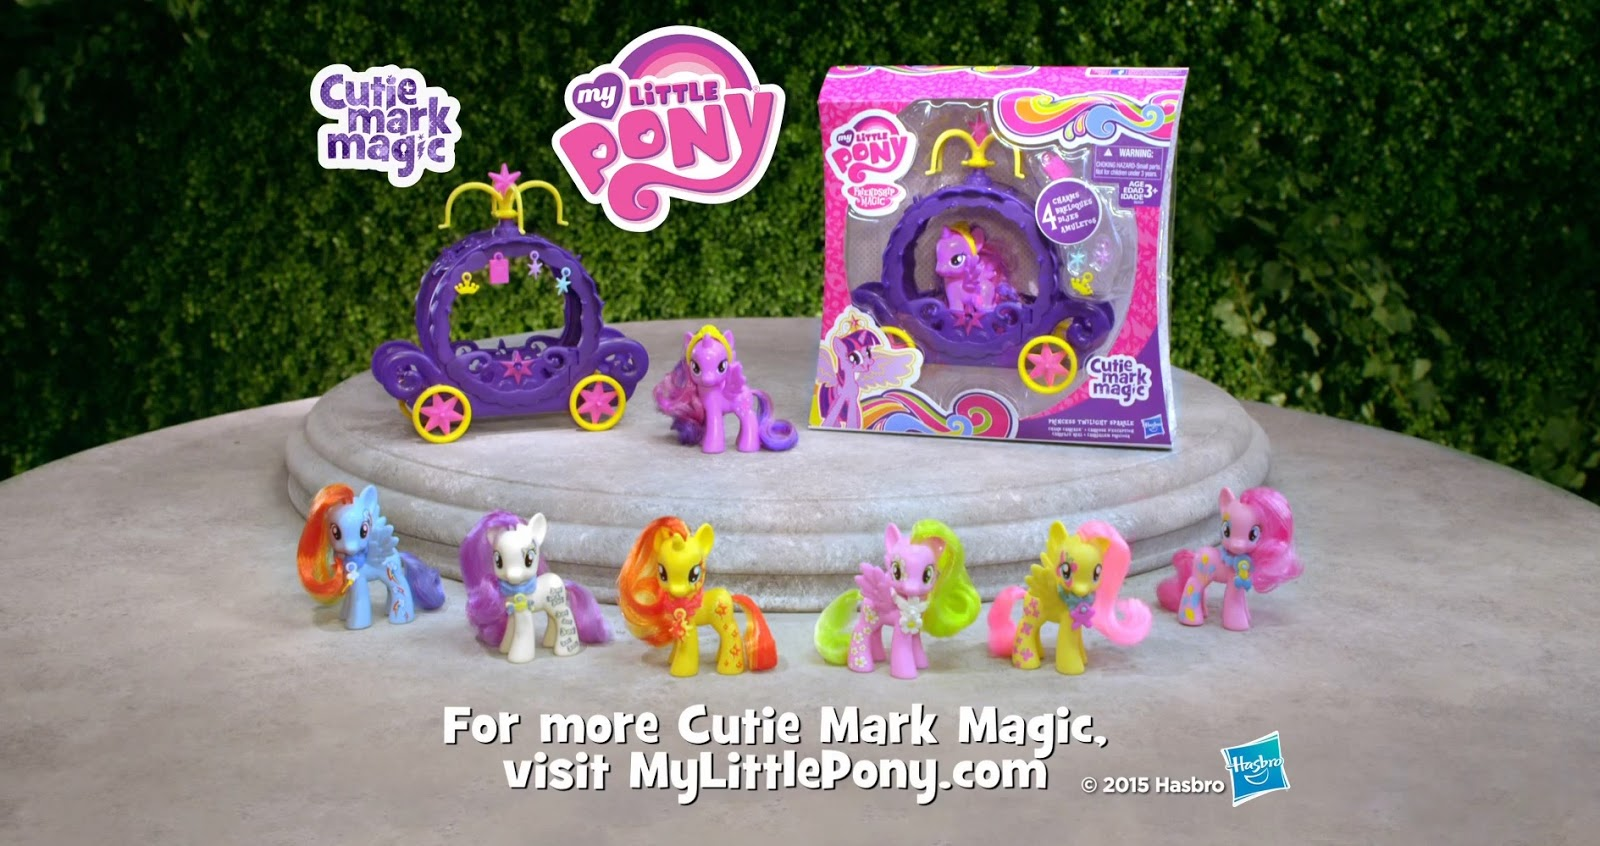 MLP Cutie Mark Magic Commercial